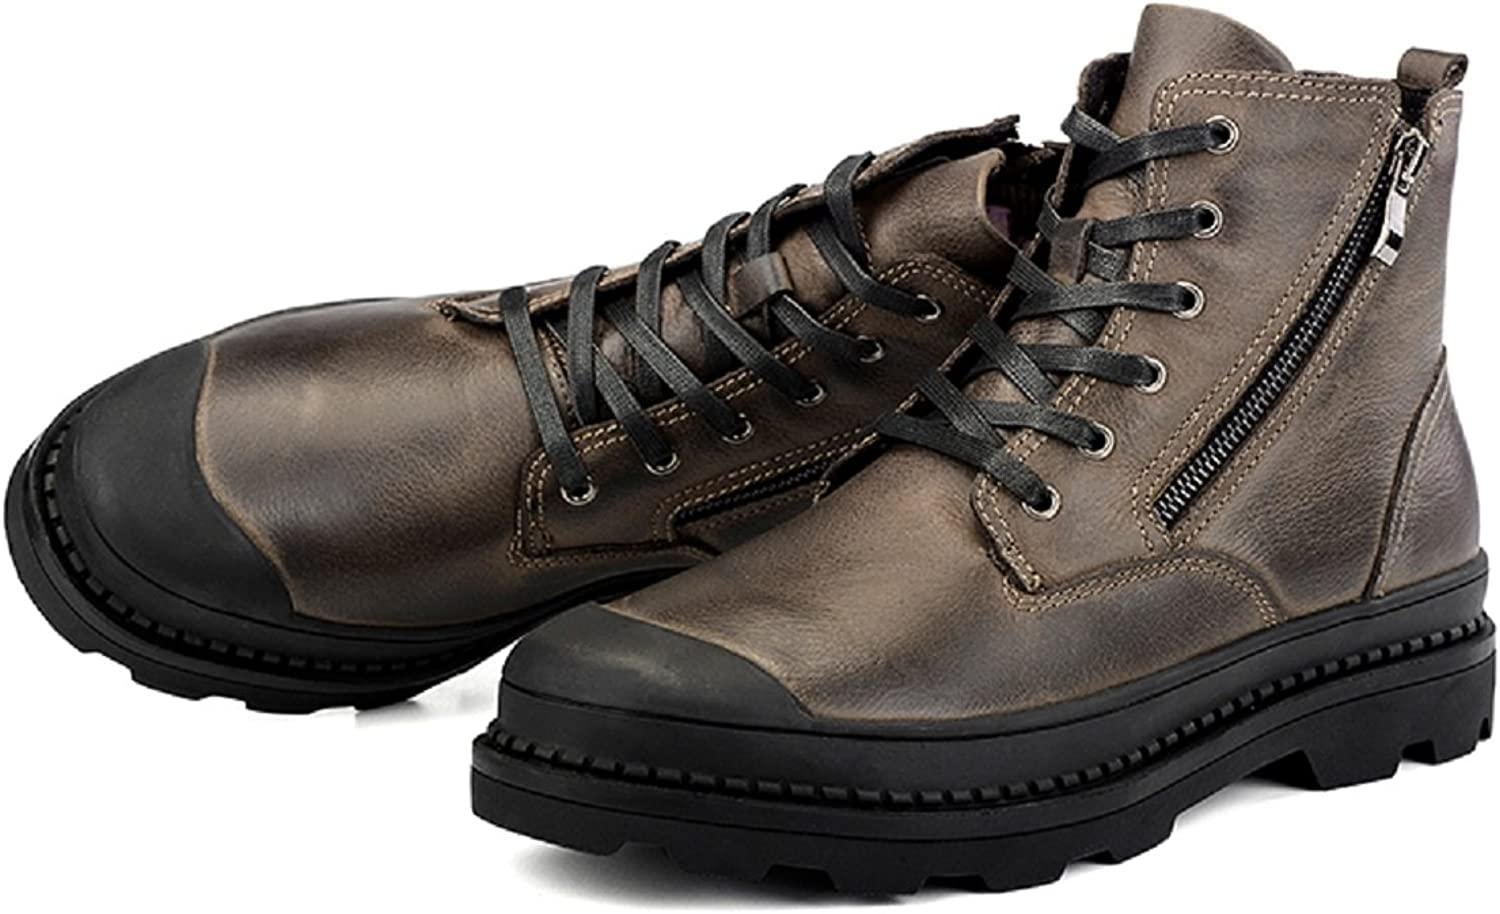 shoes CN Men's Military Tactical Work Leather Boot with Zipper